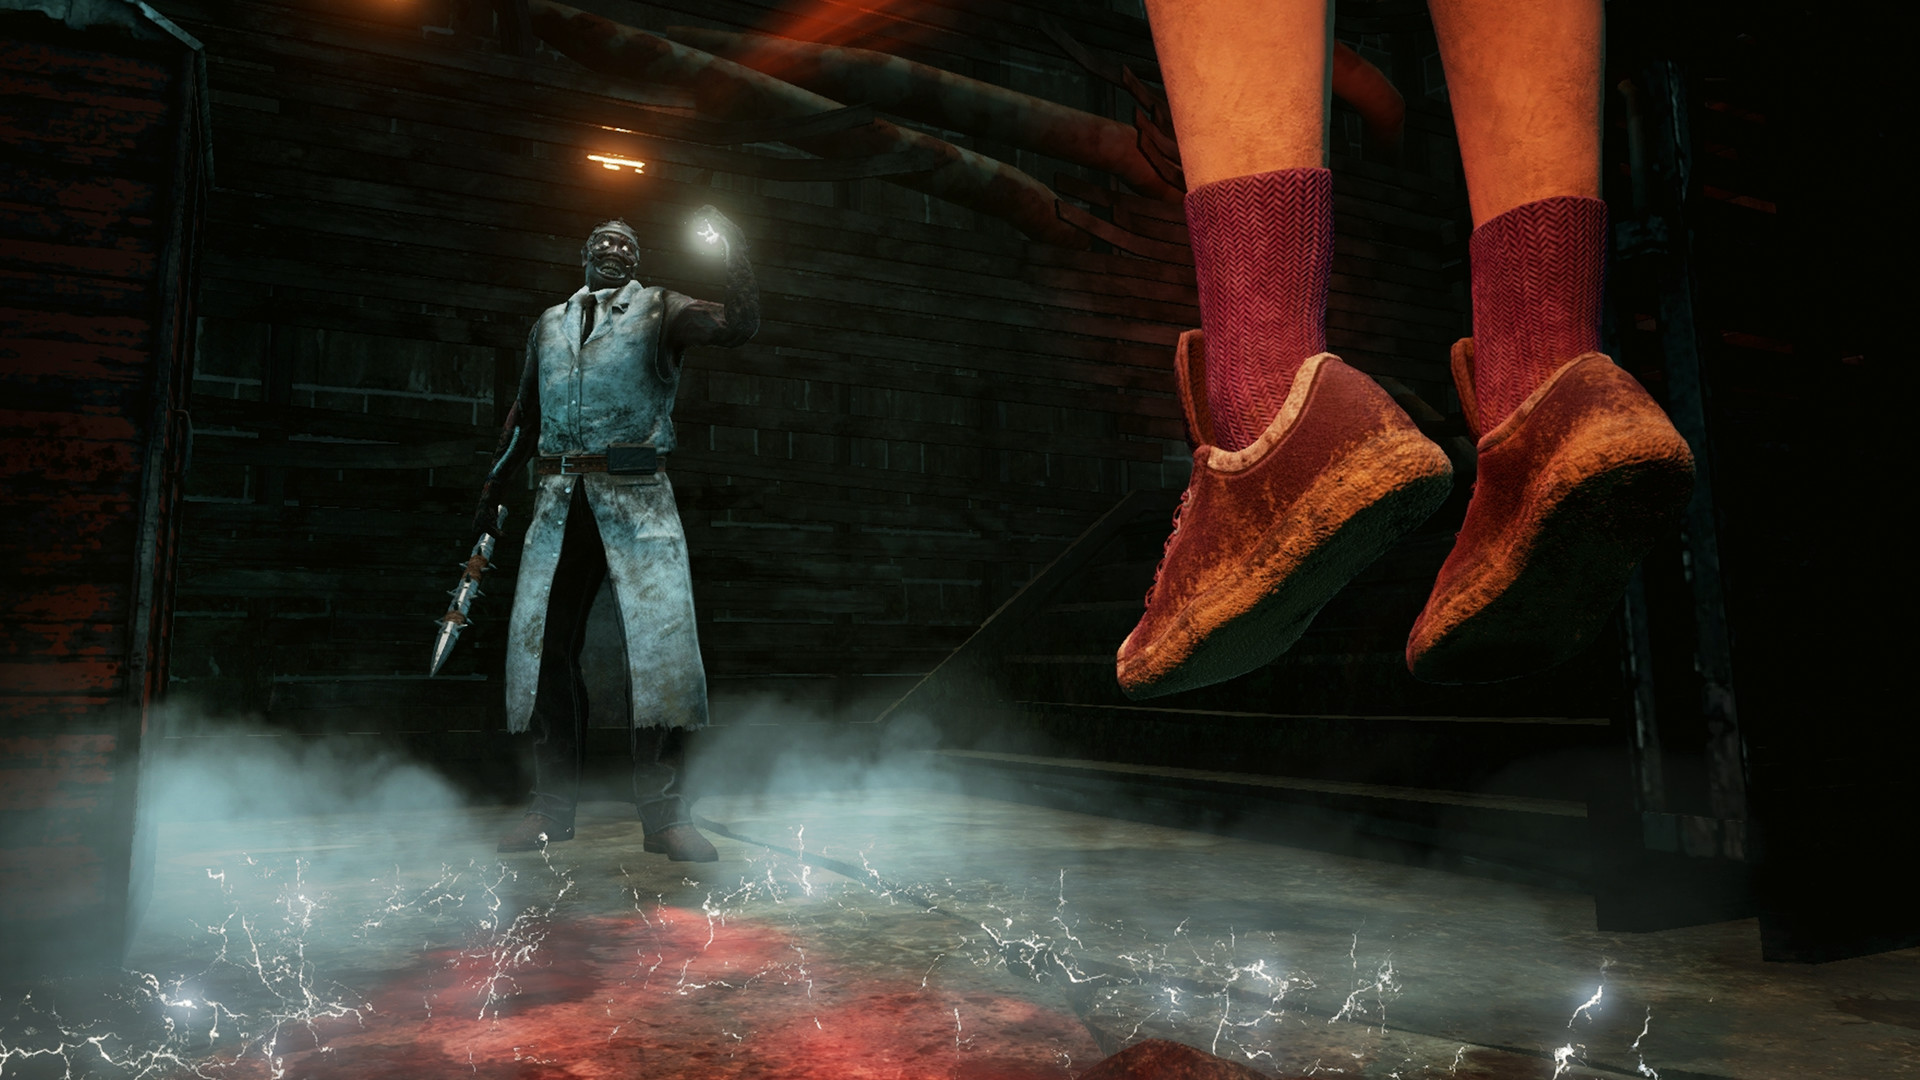 KHAiHOM.com - Dead by Daylight - Spark of Madness Chapter